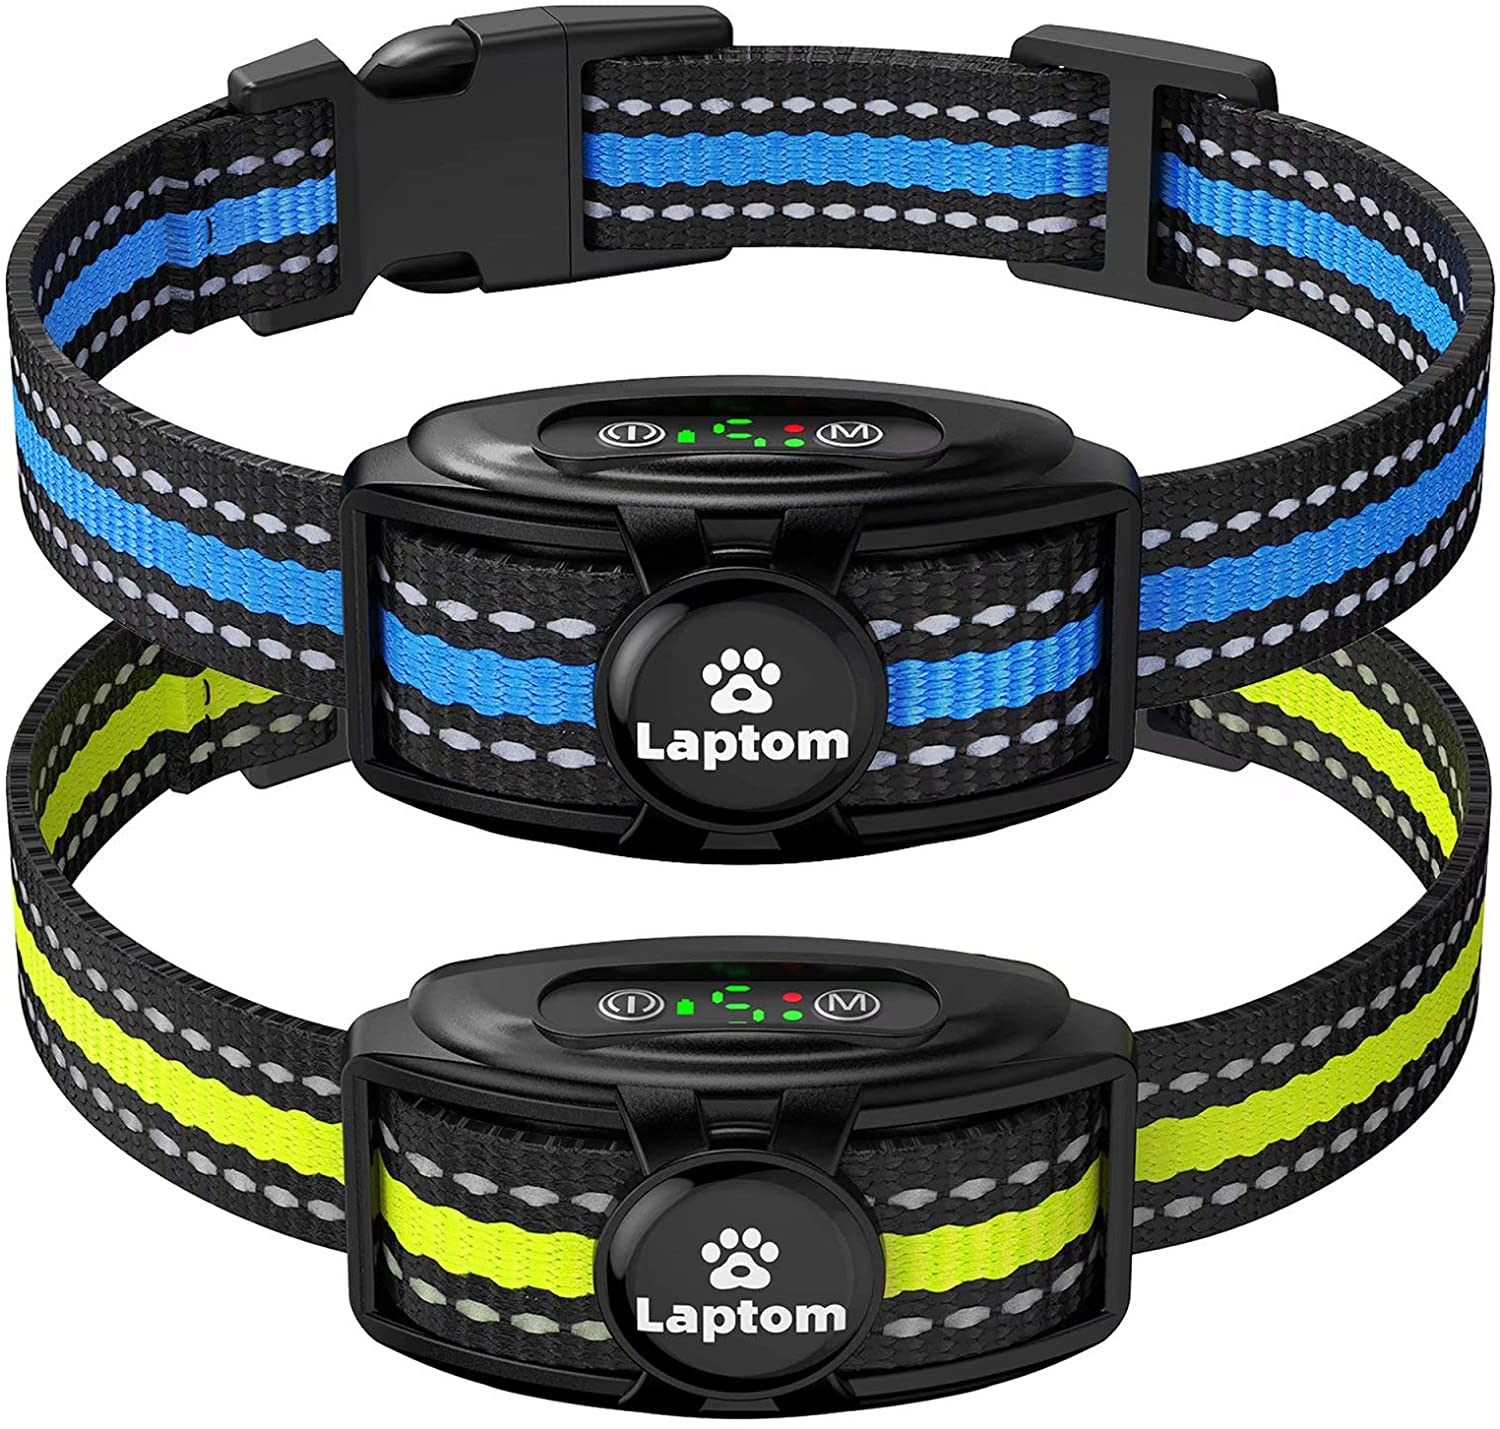 2 Pack Smart Dog Bark Collar - 5 Adjustable Sensitivity/Vibration&Sound/Rechargeable/IPX7 Waterproof - Bark Control Training Collar for Small Medium Large Dog